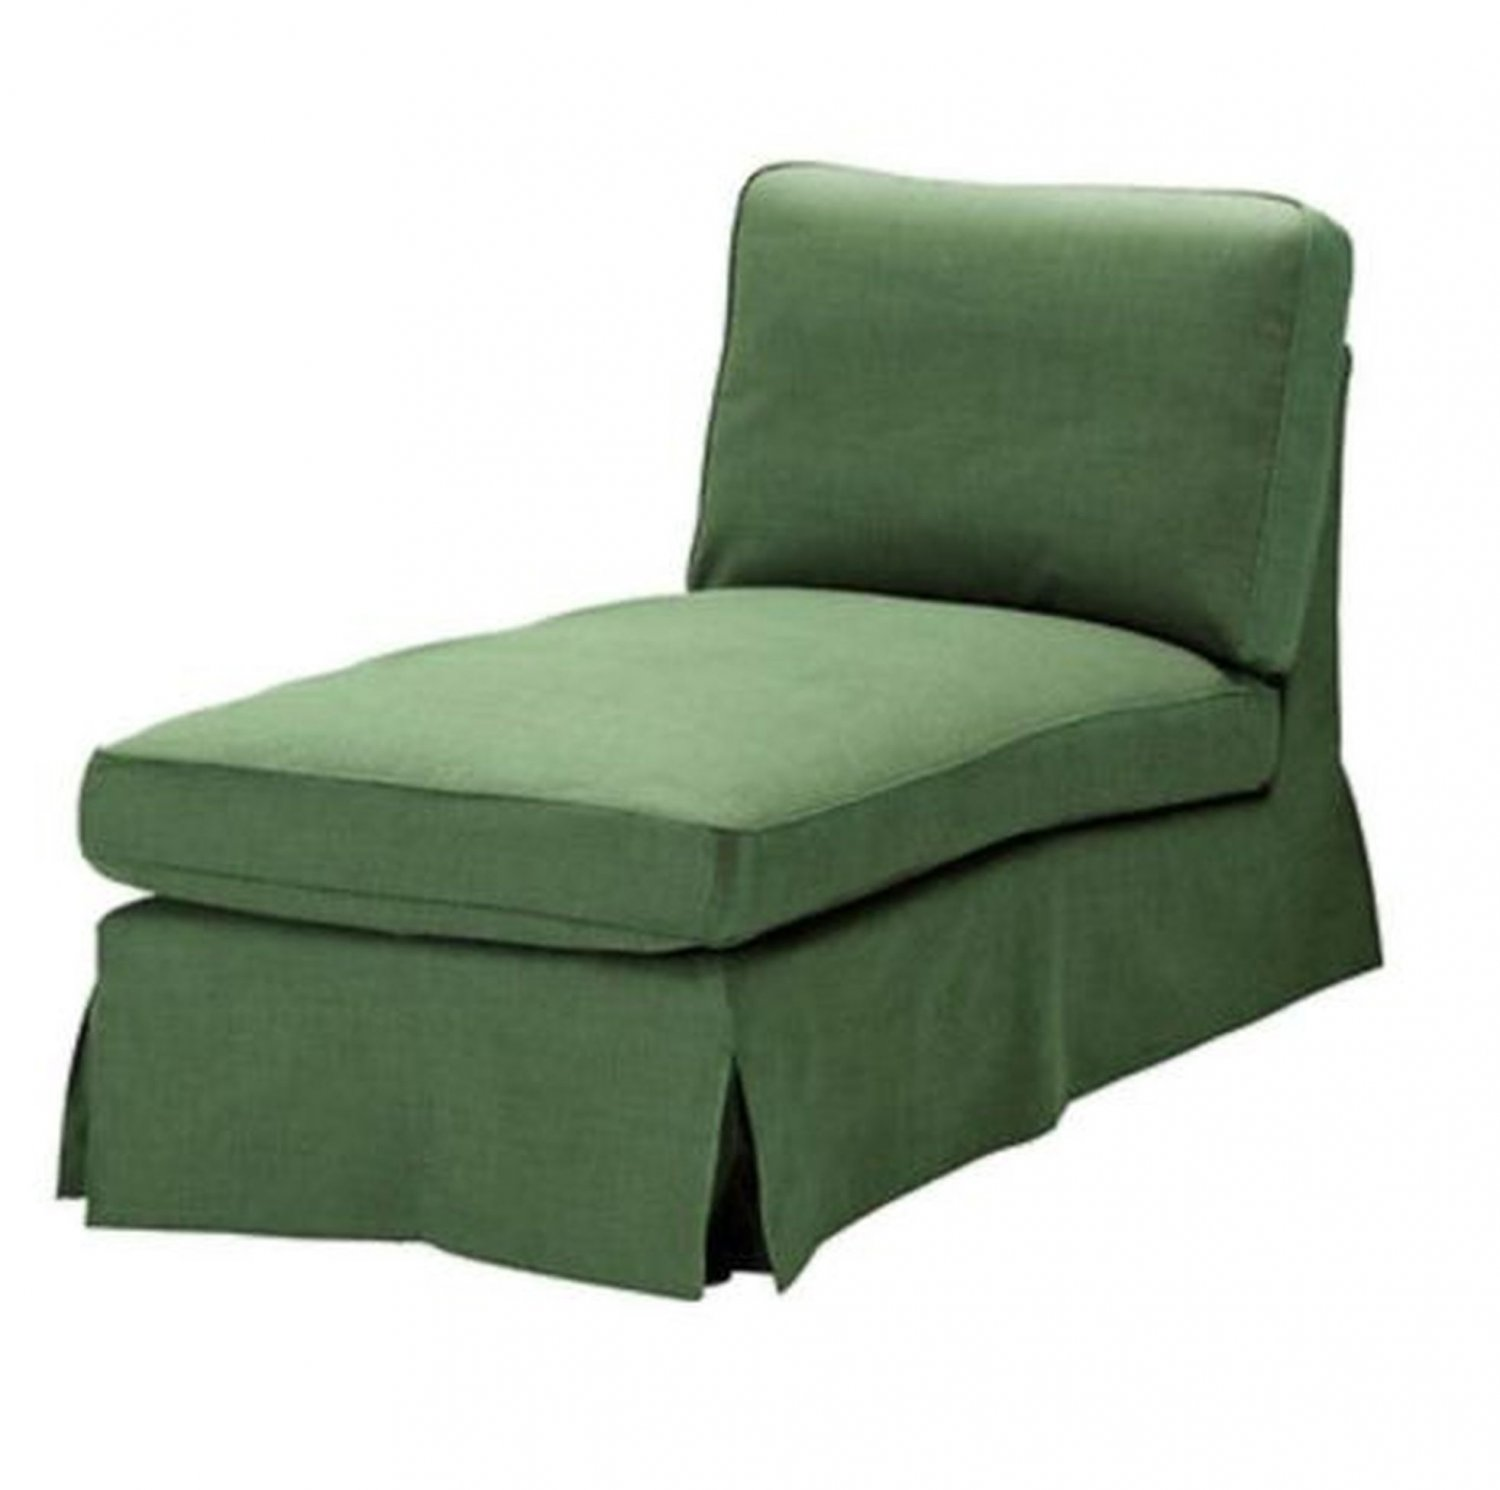 Ikea ektorp chaise longue cover slipcover svanby green for Chaise longue ikea uk